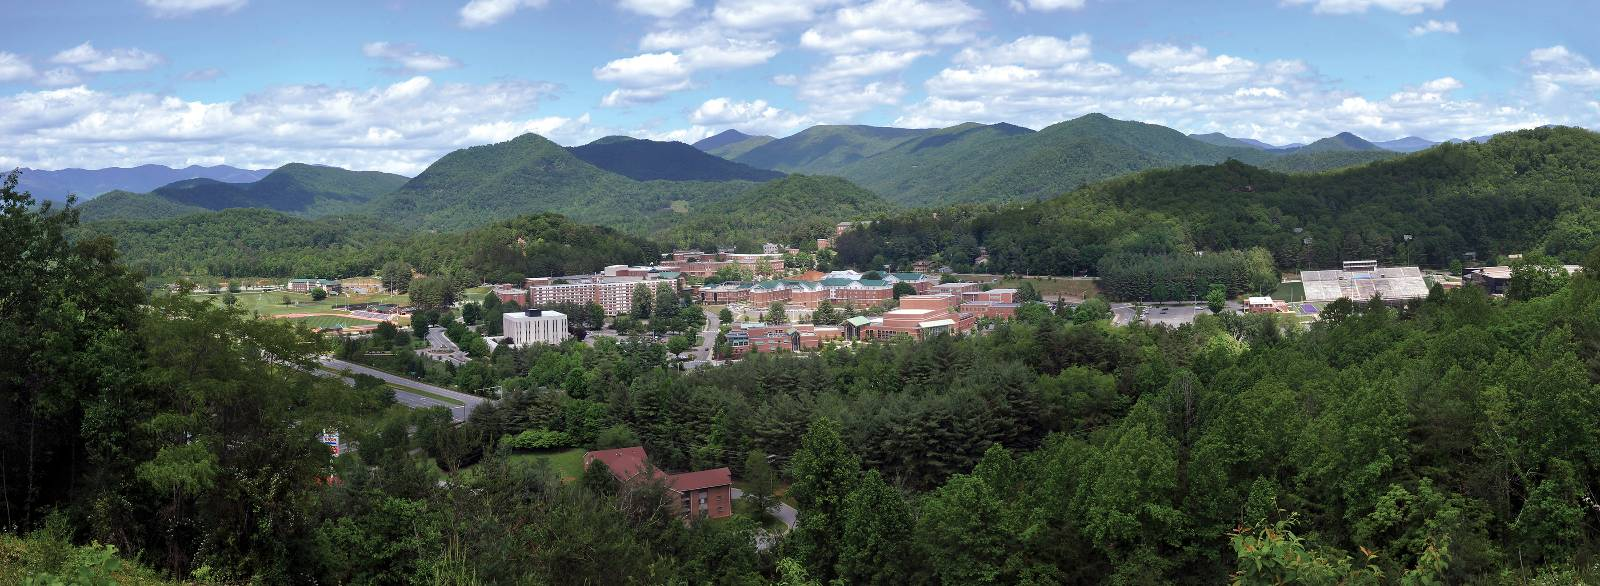 Western Carolina main campus